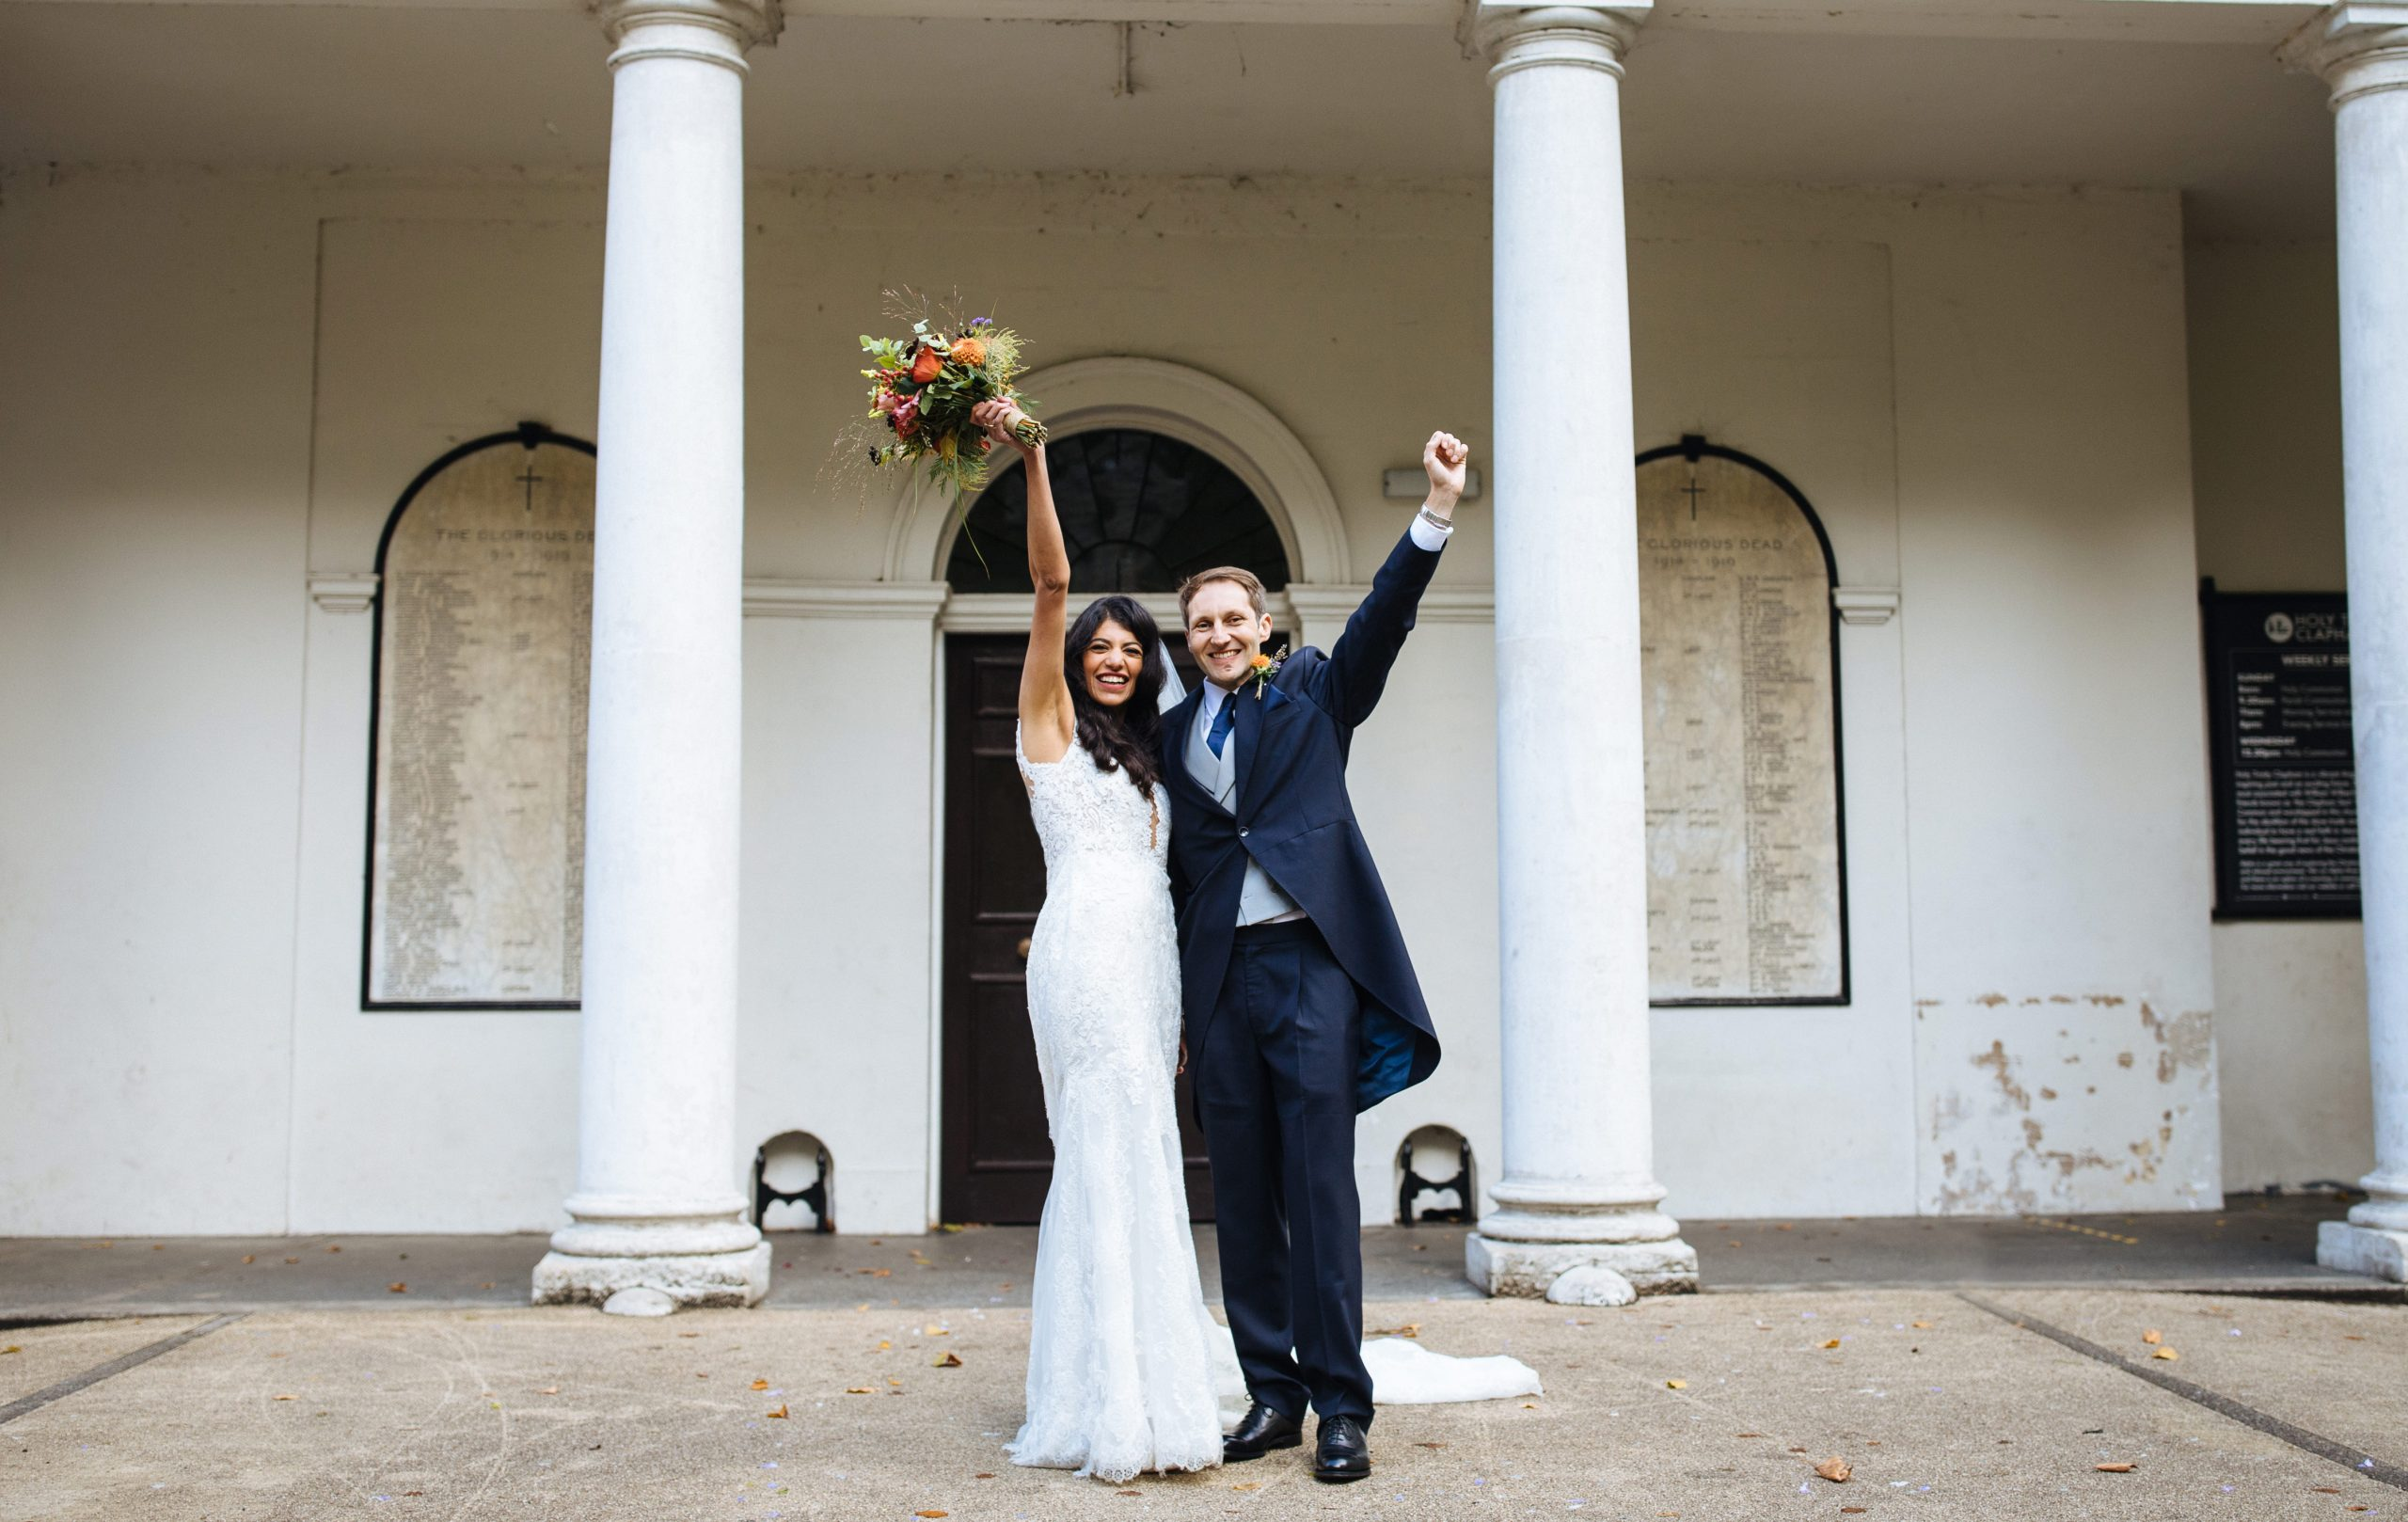 bride and groom punching the air in delight after wedding ceremony